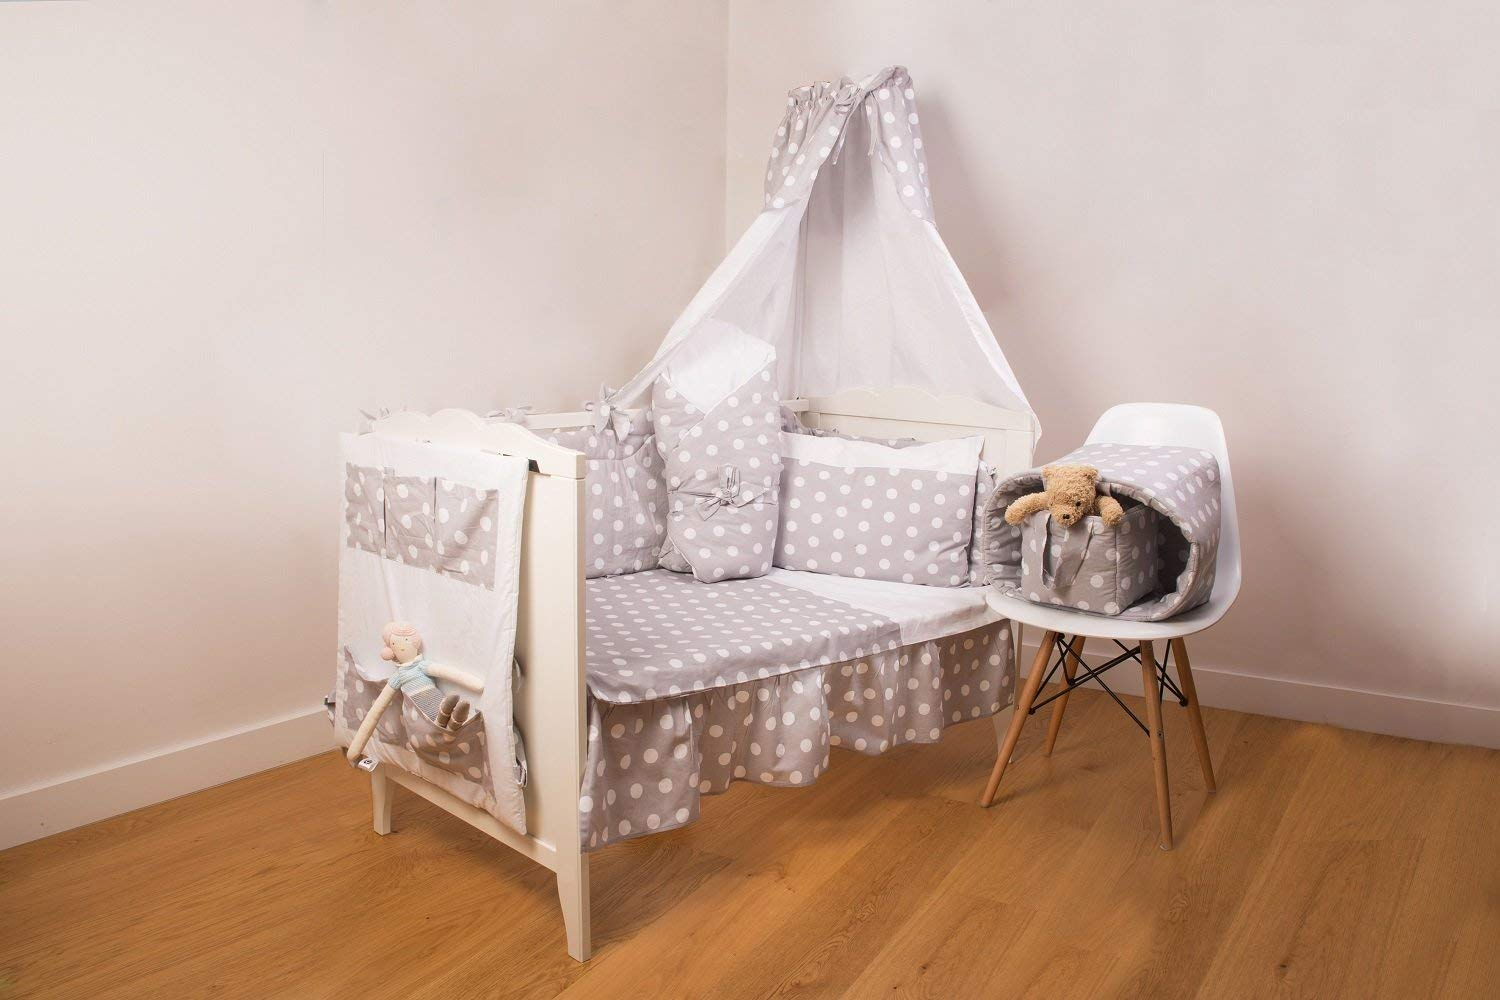 Safe for Babies Padded Bumper Removable with Zipper for COT 60x120cm Vizaro 100/% Luxury Cotton C Great Laced Star OekoTex Made in EU